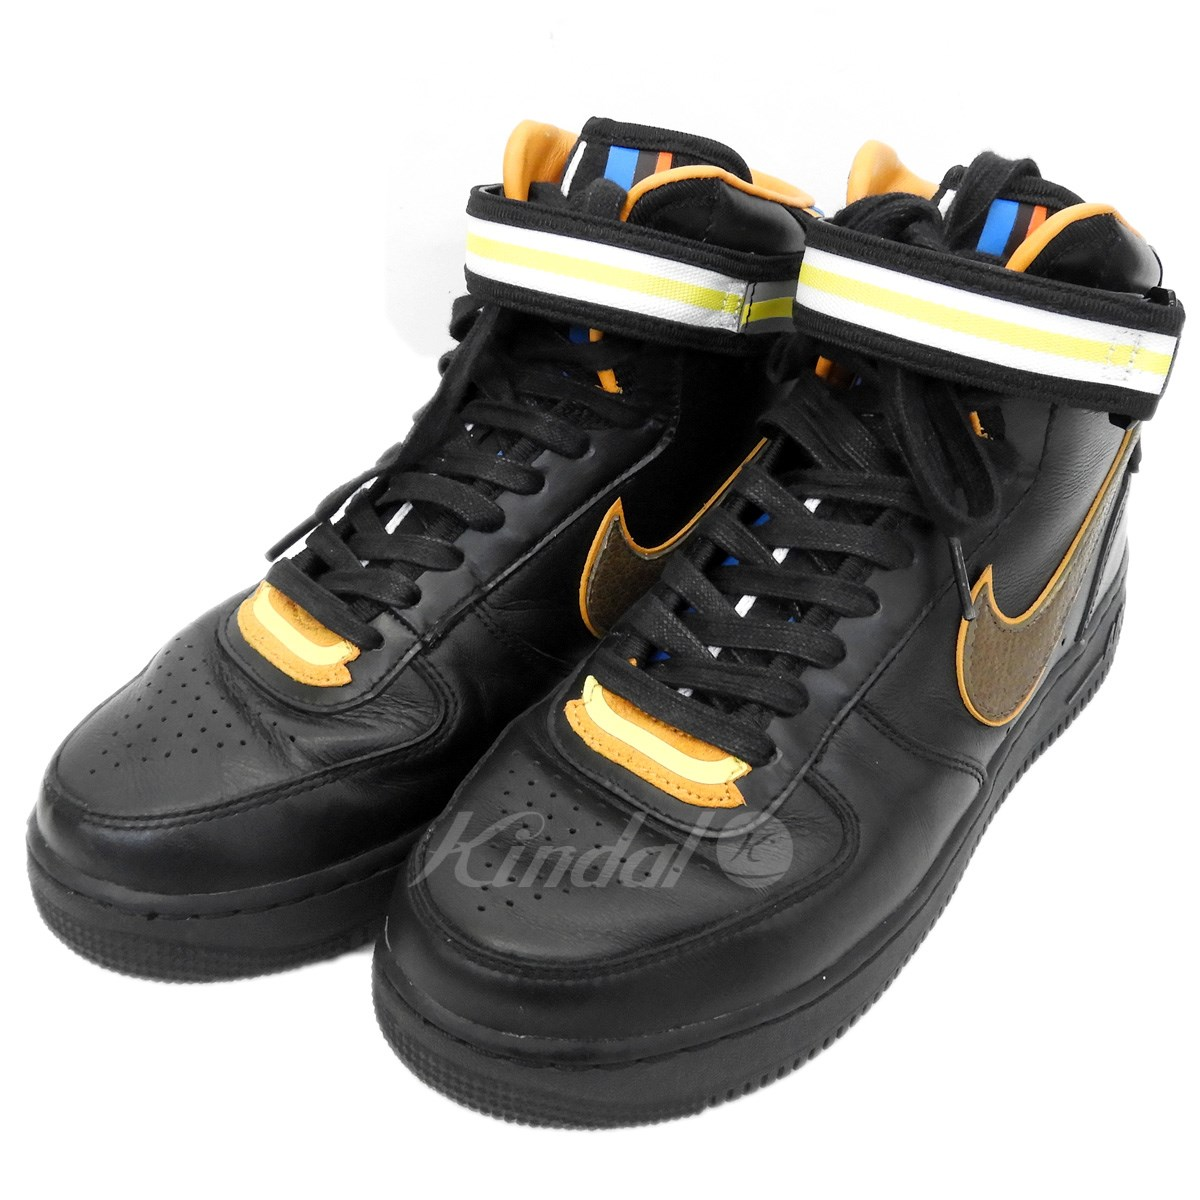 中古 【中古】NIKE×Riccardo Tisci 「AIR FORCE 1 MID SP」 677803-020 ミッドカットスニーカー  【送料無料】 【006698】 【KIND1254】